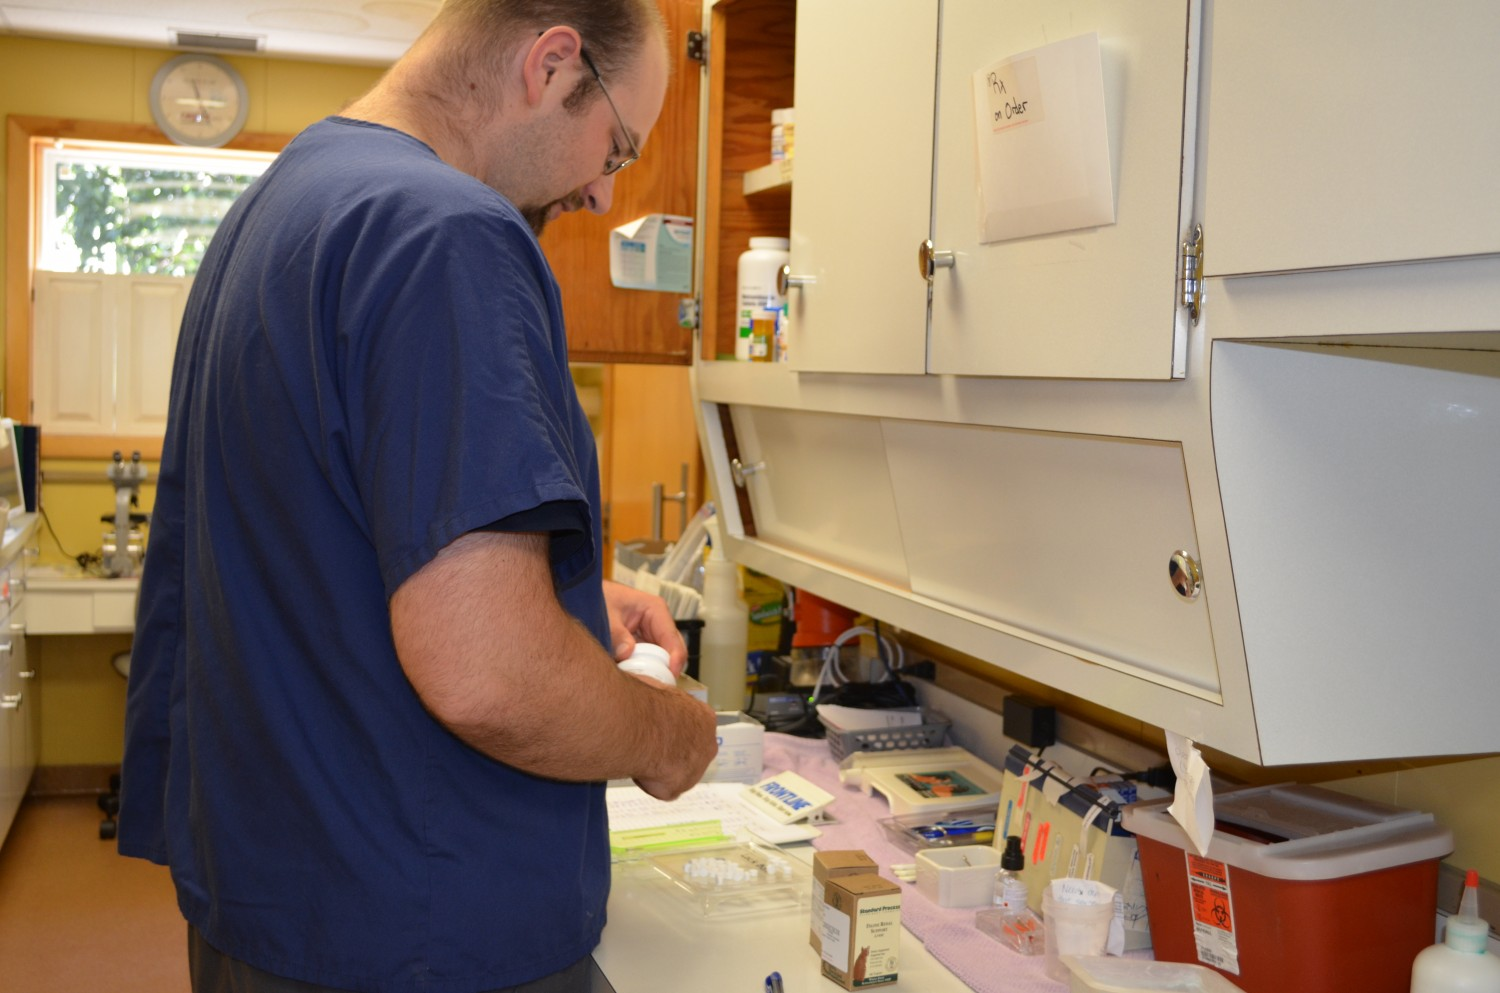 Technician Chris filling prescriptions - Manchester Veterinary Clinic - CT